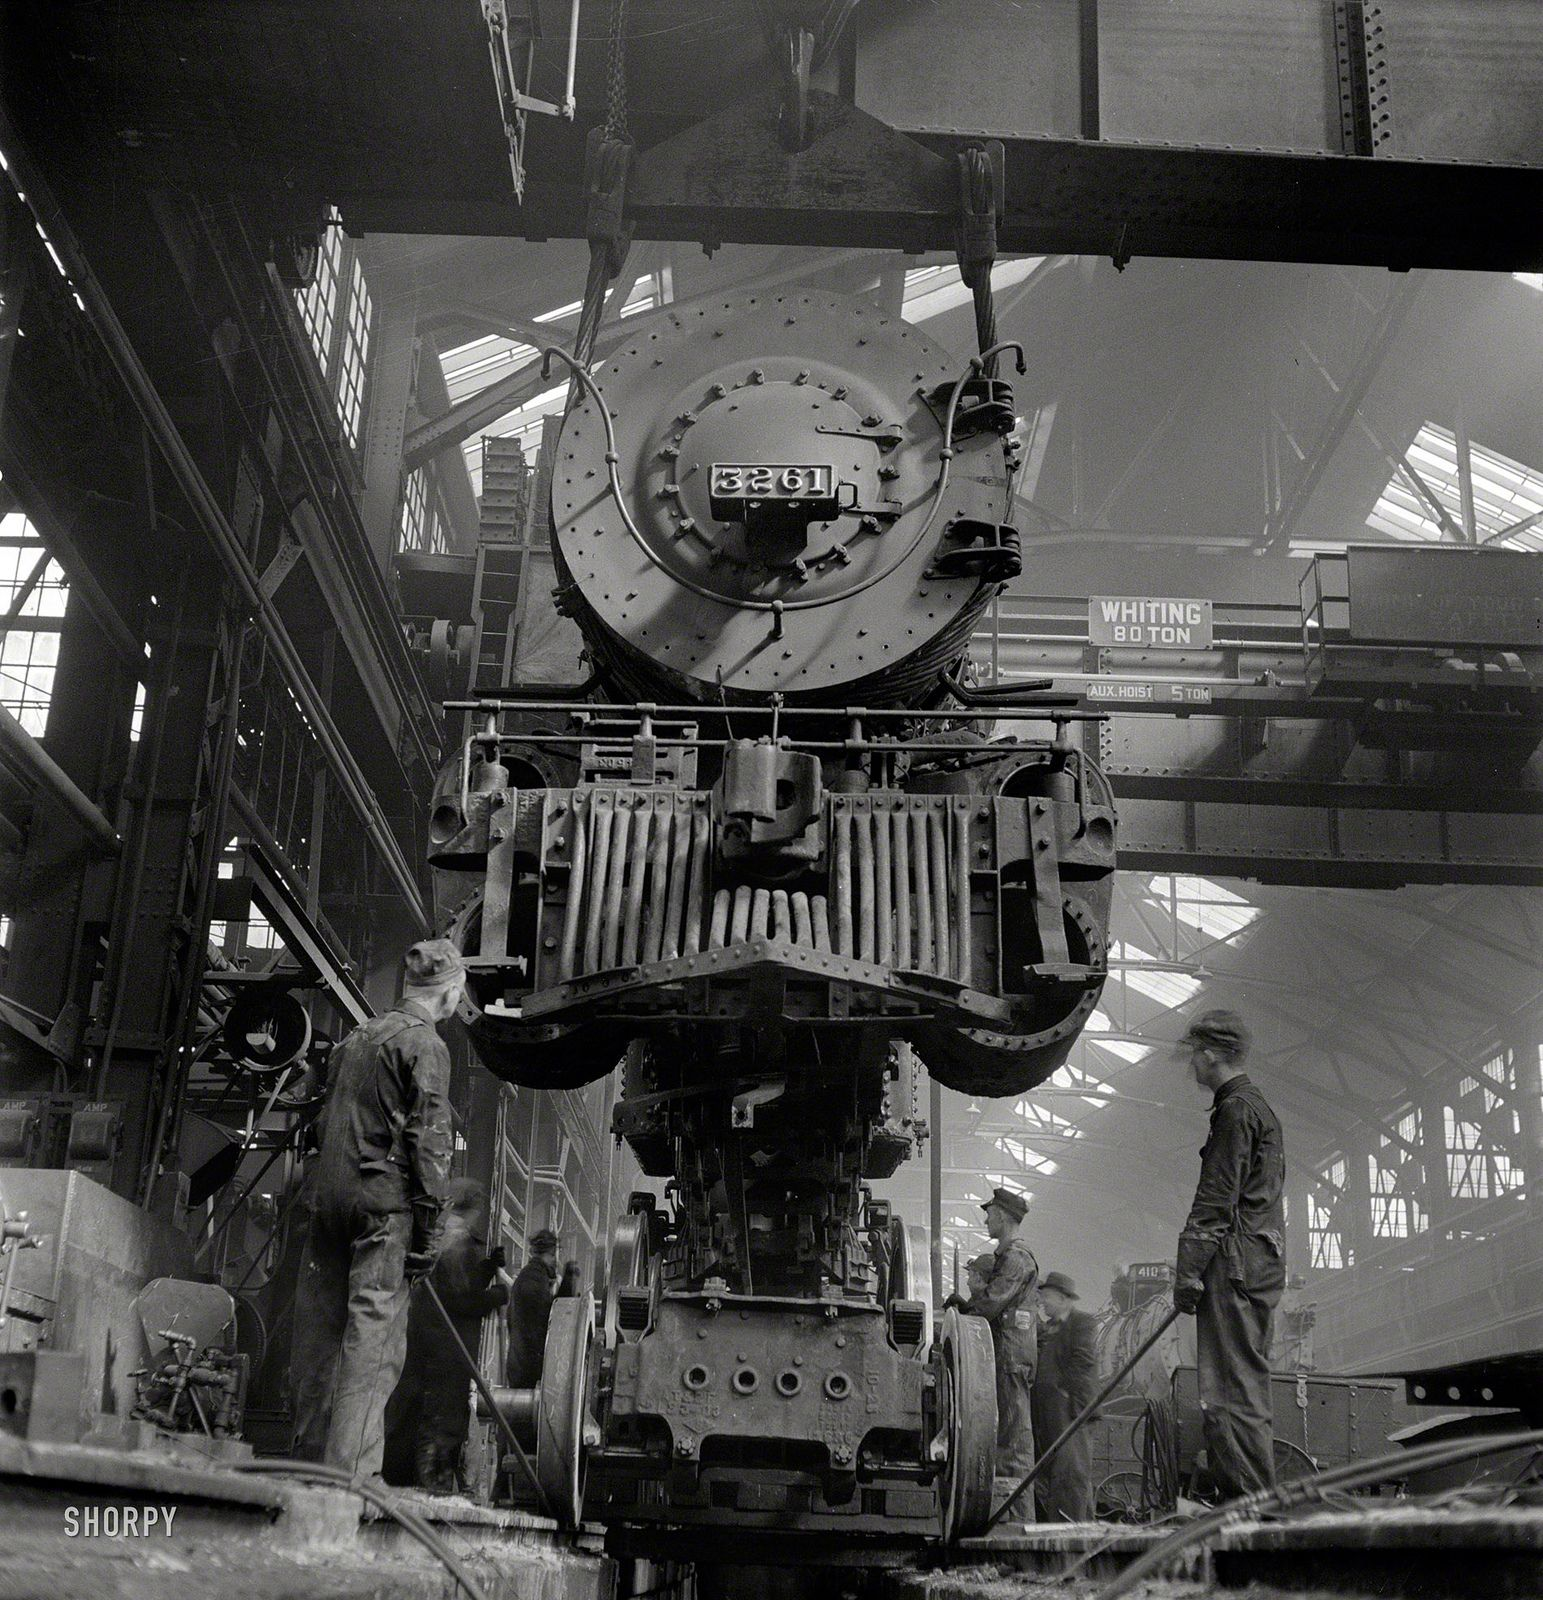 """https://flic.kr/p/dSE1Hq 